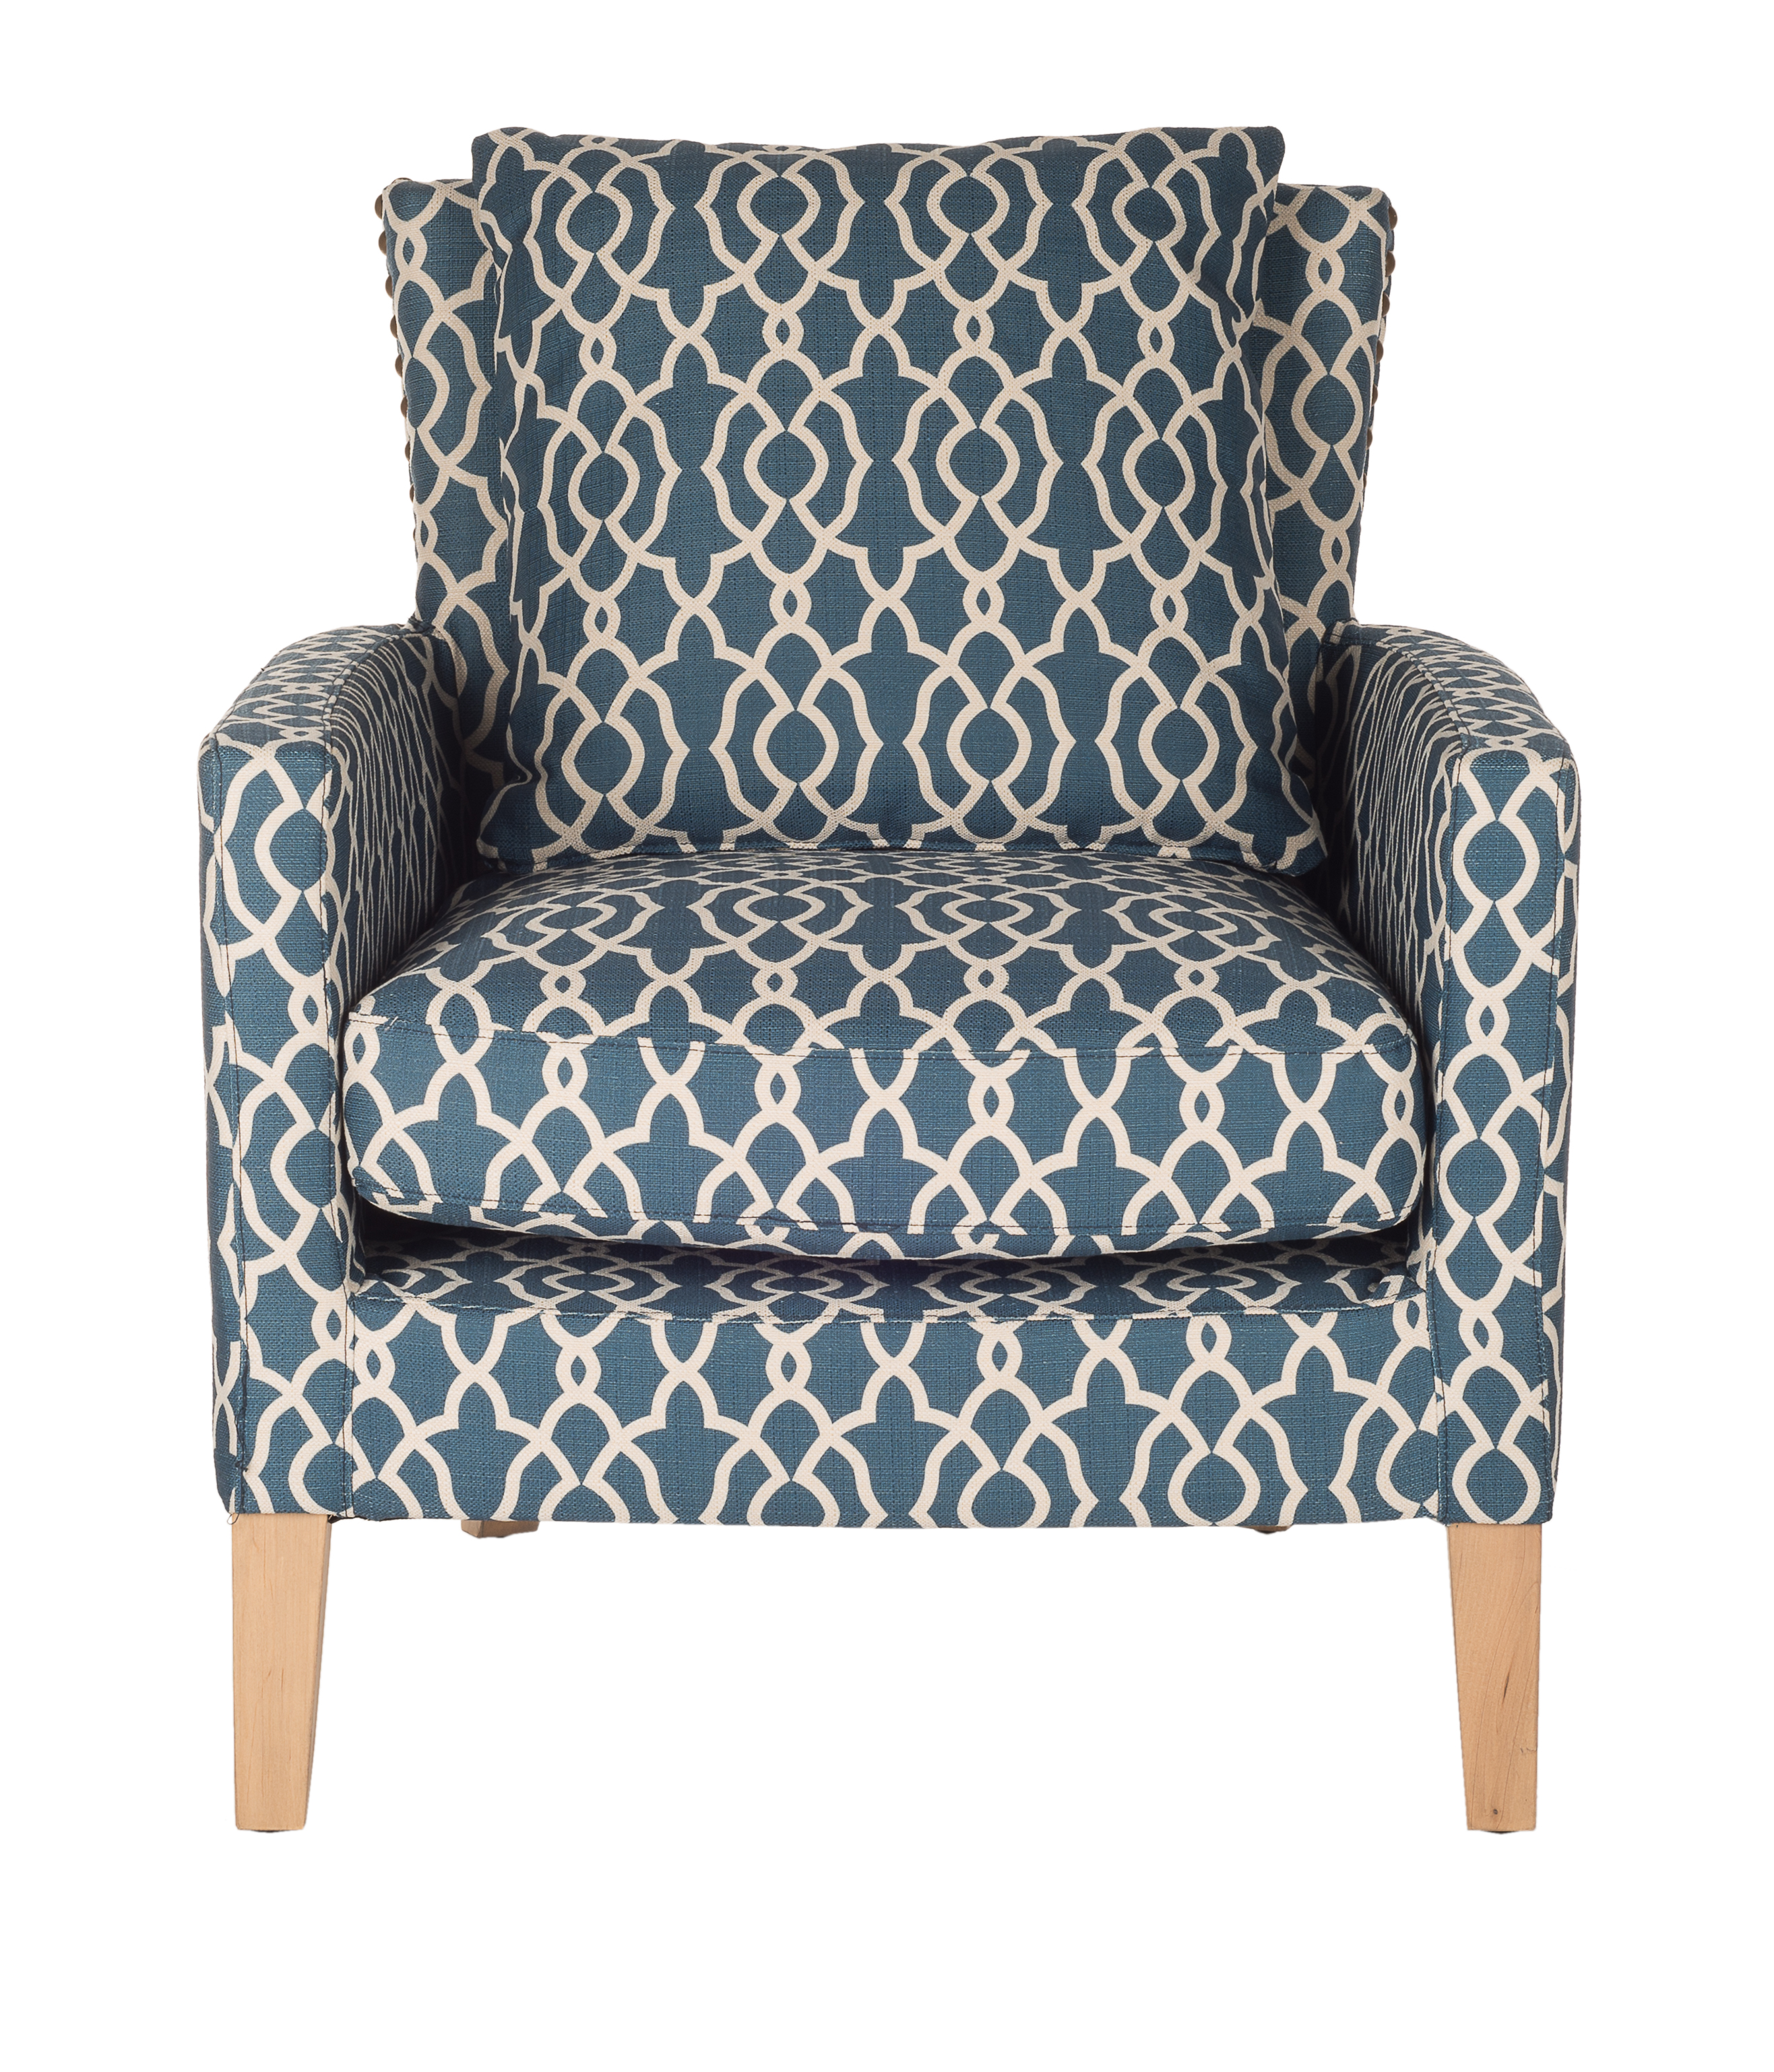 Dream in blue lifestyle paris - Fauteuil tissu imprime ...